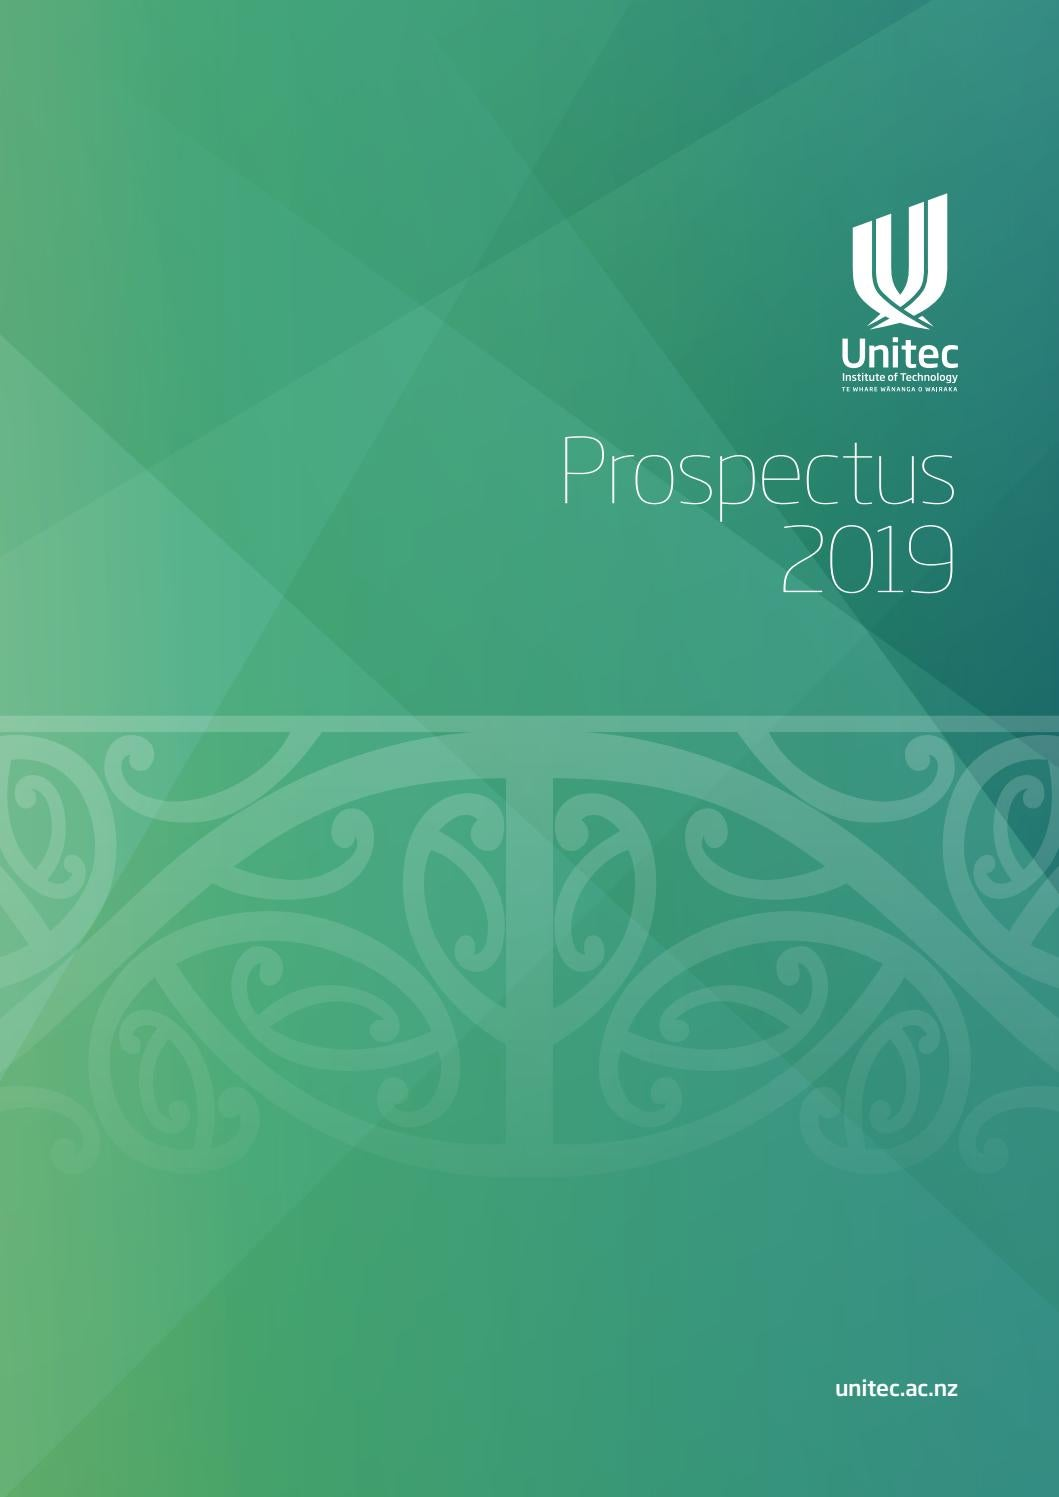 Unitec Prospectus 2019 By Institute Of Technology Issuu Powerpoint Replacement For Workbench Youtube